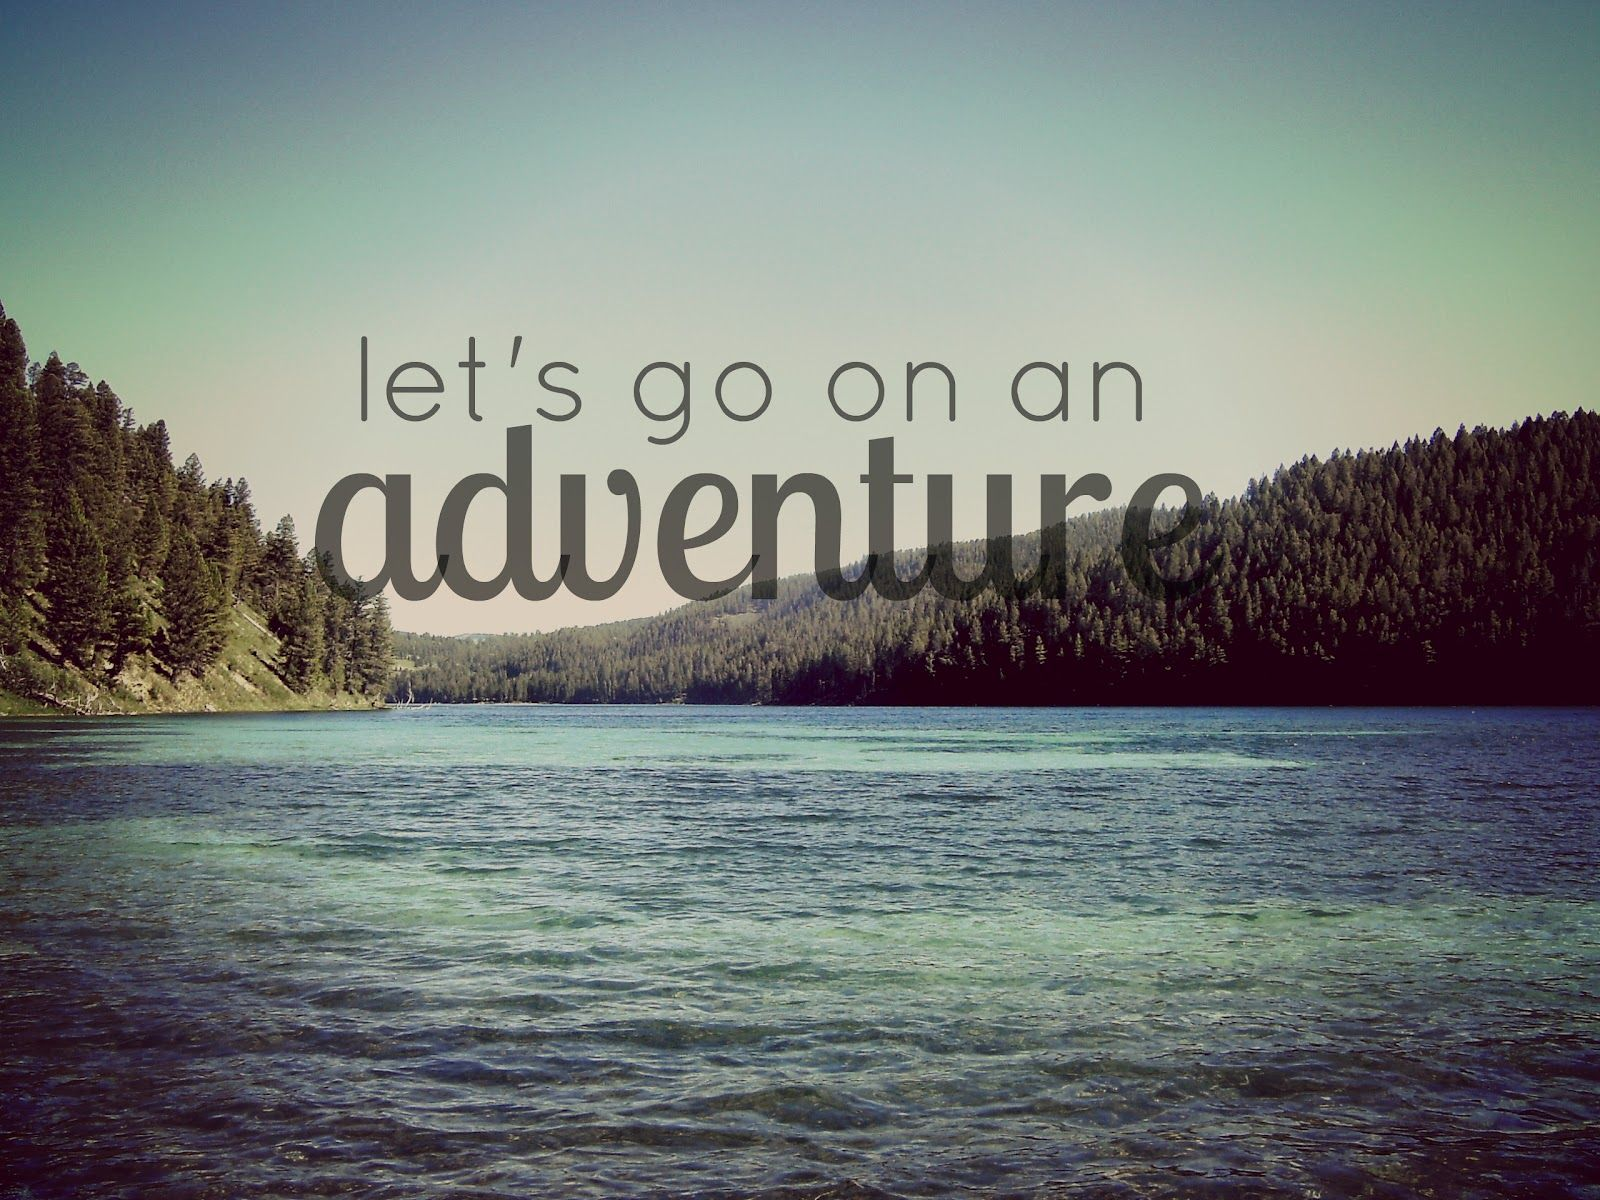 Adventure Quotes Pictures Images: Ready, Set, Go! Let The Holiday Girl Help And Inspire Your